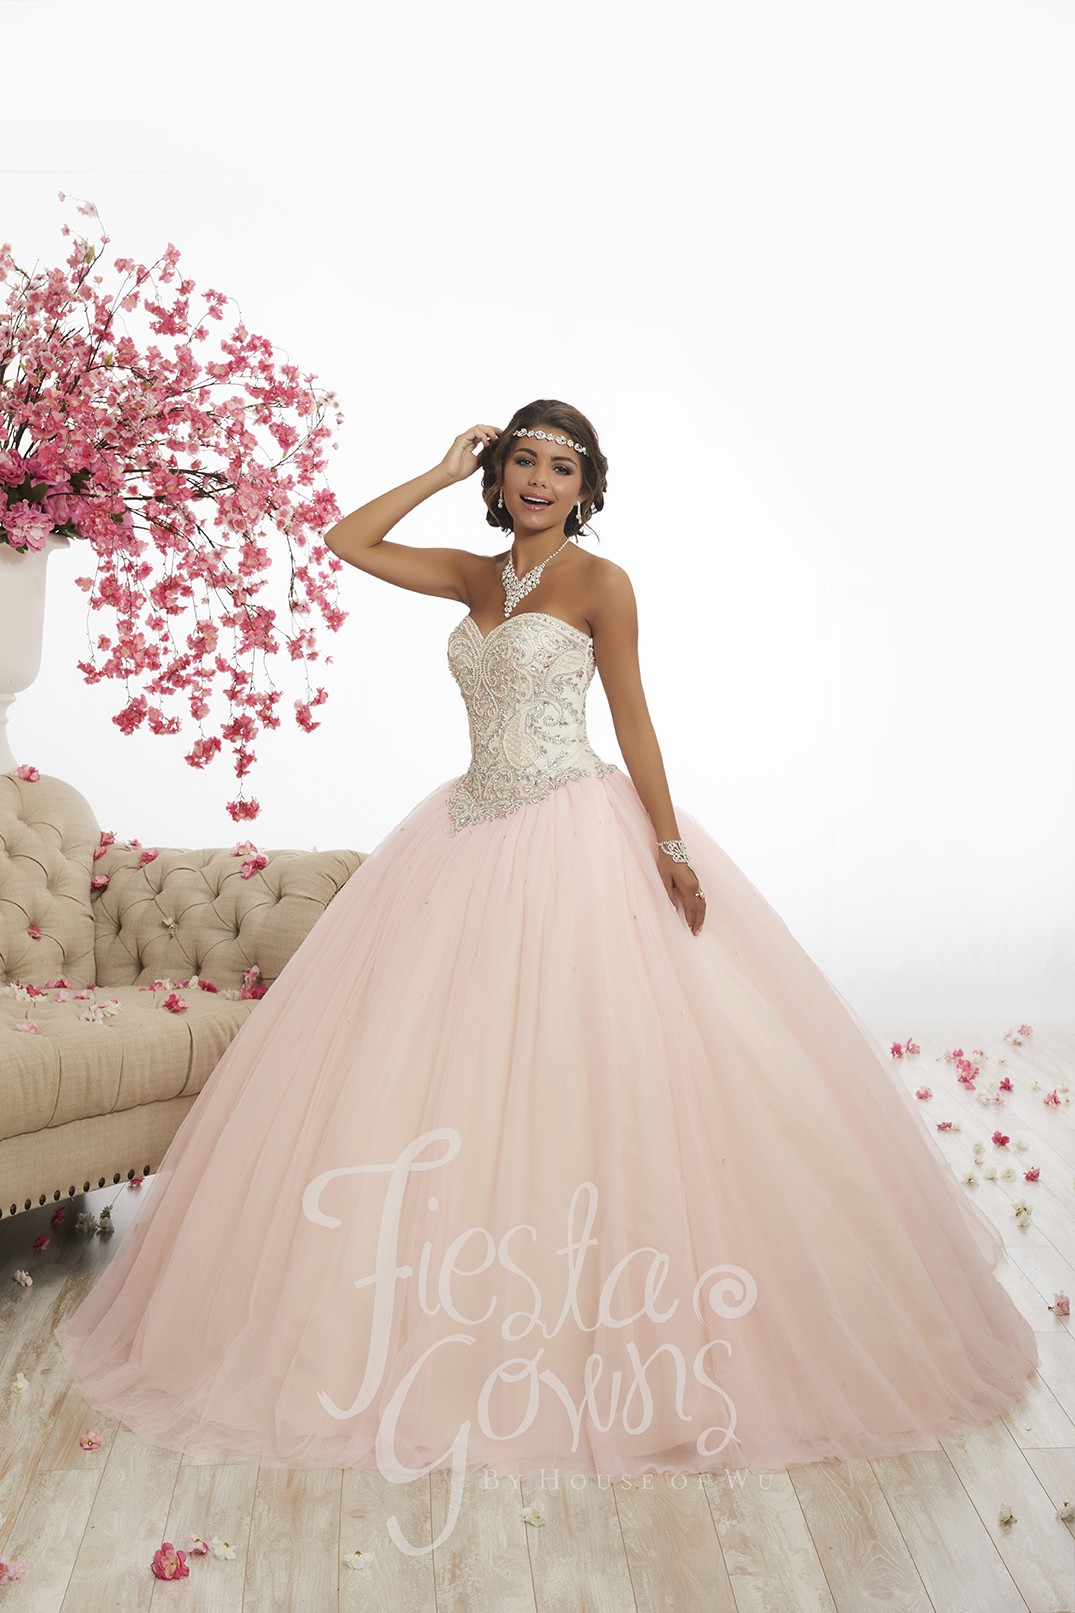 29520f1f525 Fiesta Gowns by House of Wu - Dress Style 56337 ...